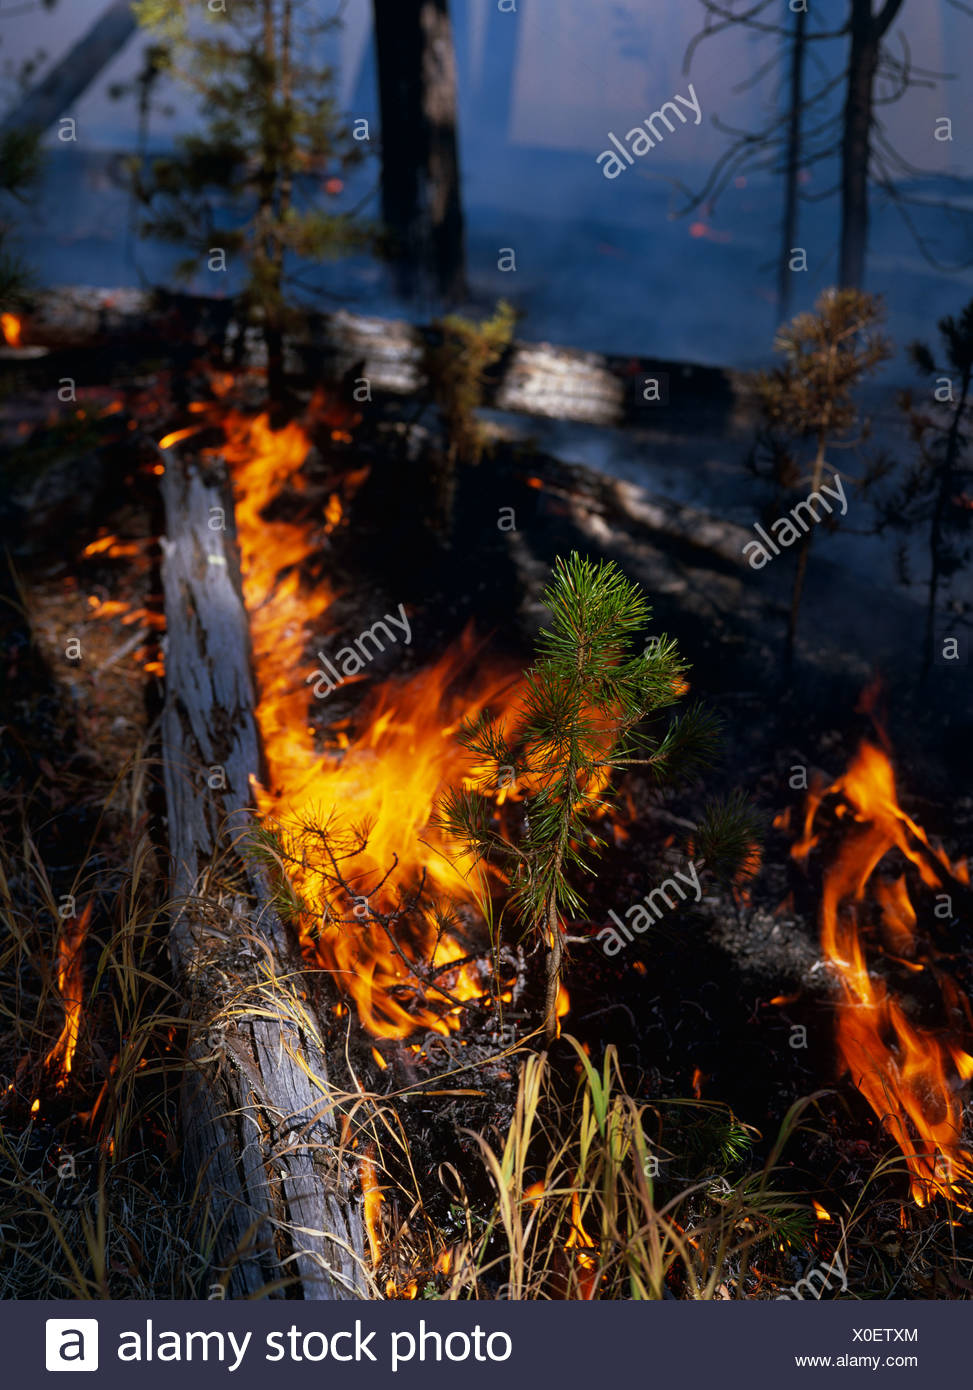 Lodgepole Pine seedling during wildfire, Hayden Valley, Yellowstone National Park, Wyoming, USA - Stock Image